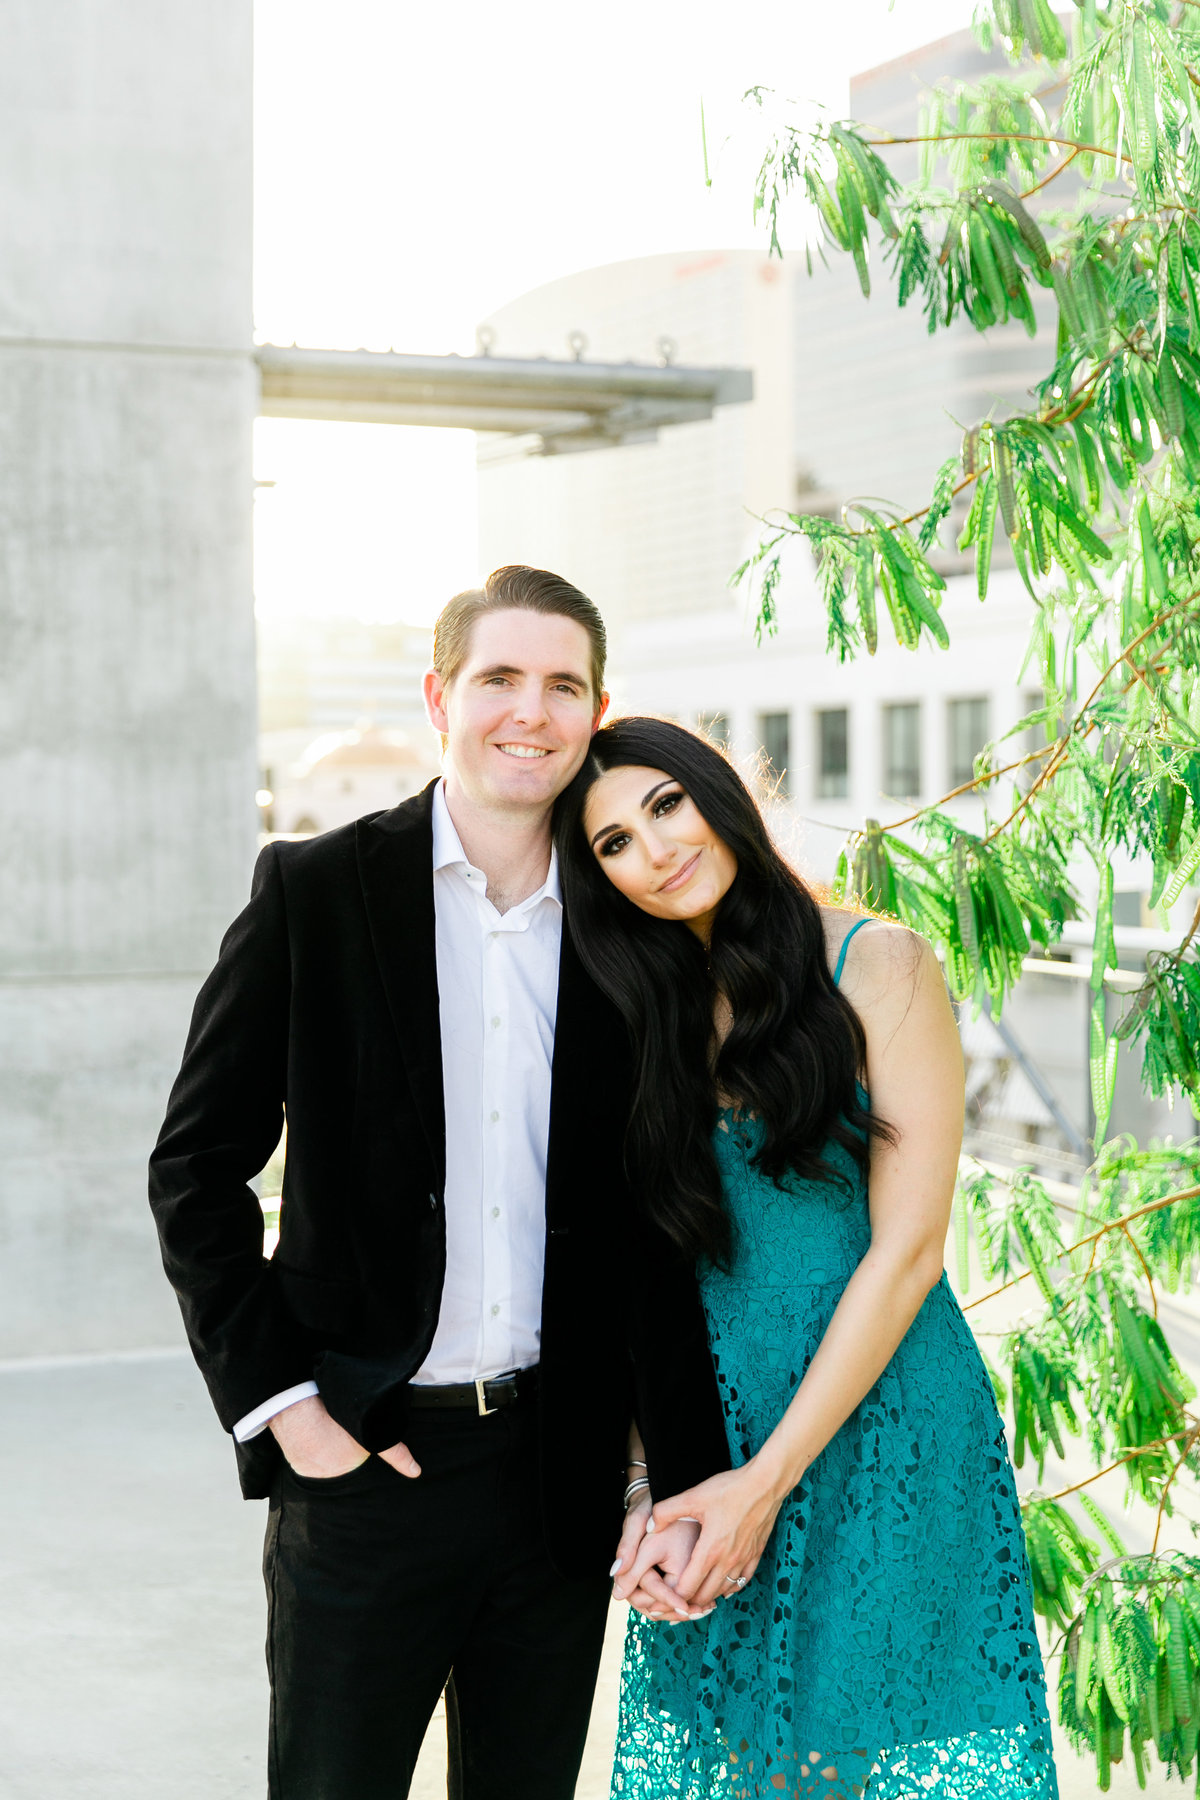 Karlie Colleen Photography - Arizona Engagement City Shoot - Kim & Tim-192